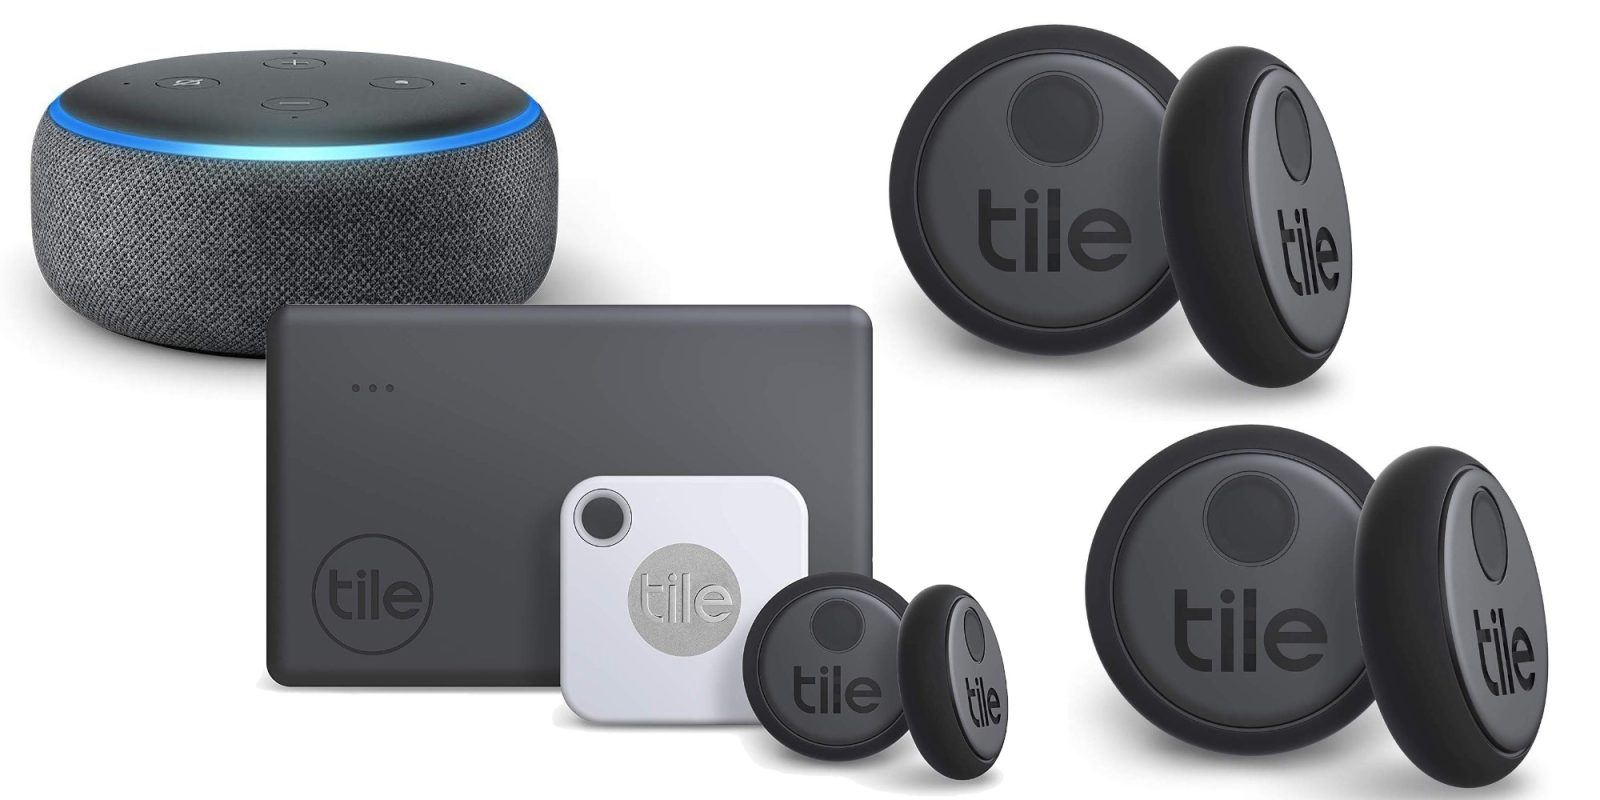 Buy Tile's new Bluetooth trackers and get a FREE Echo Dot, bundles from $60